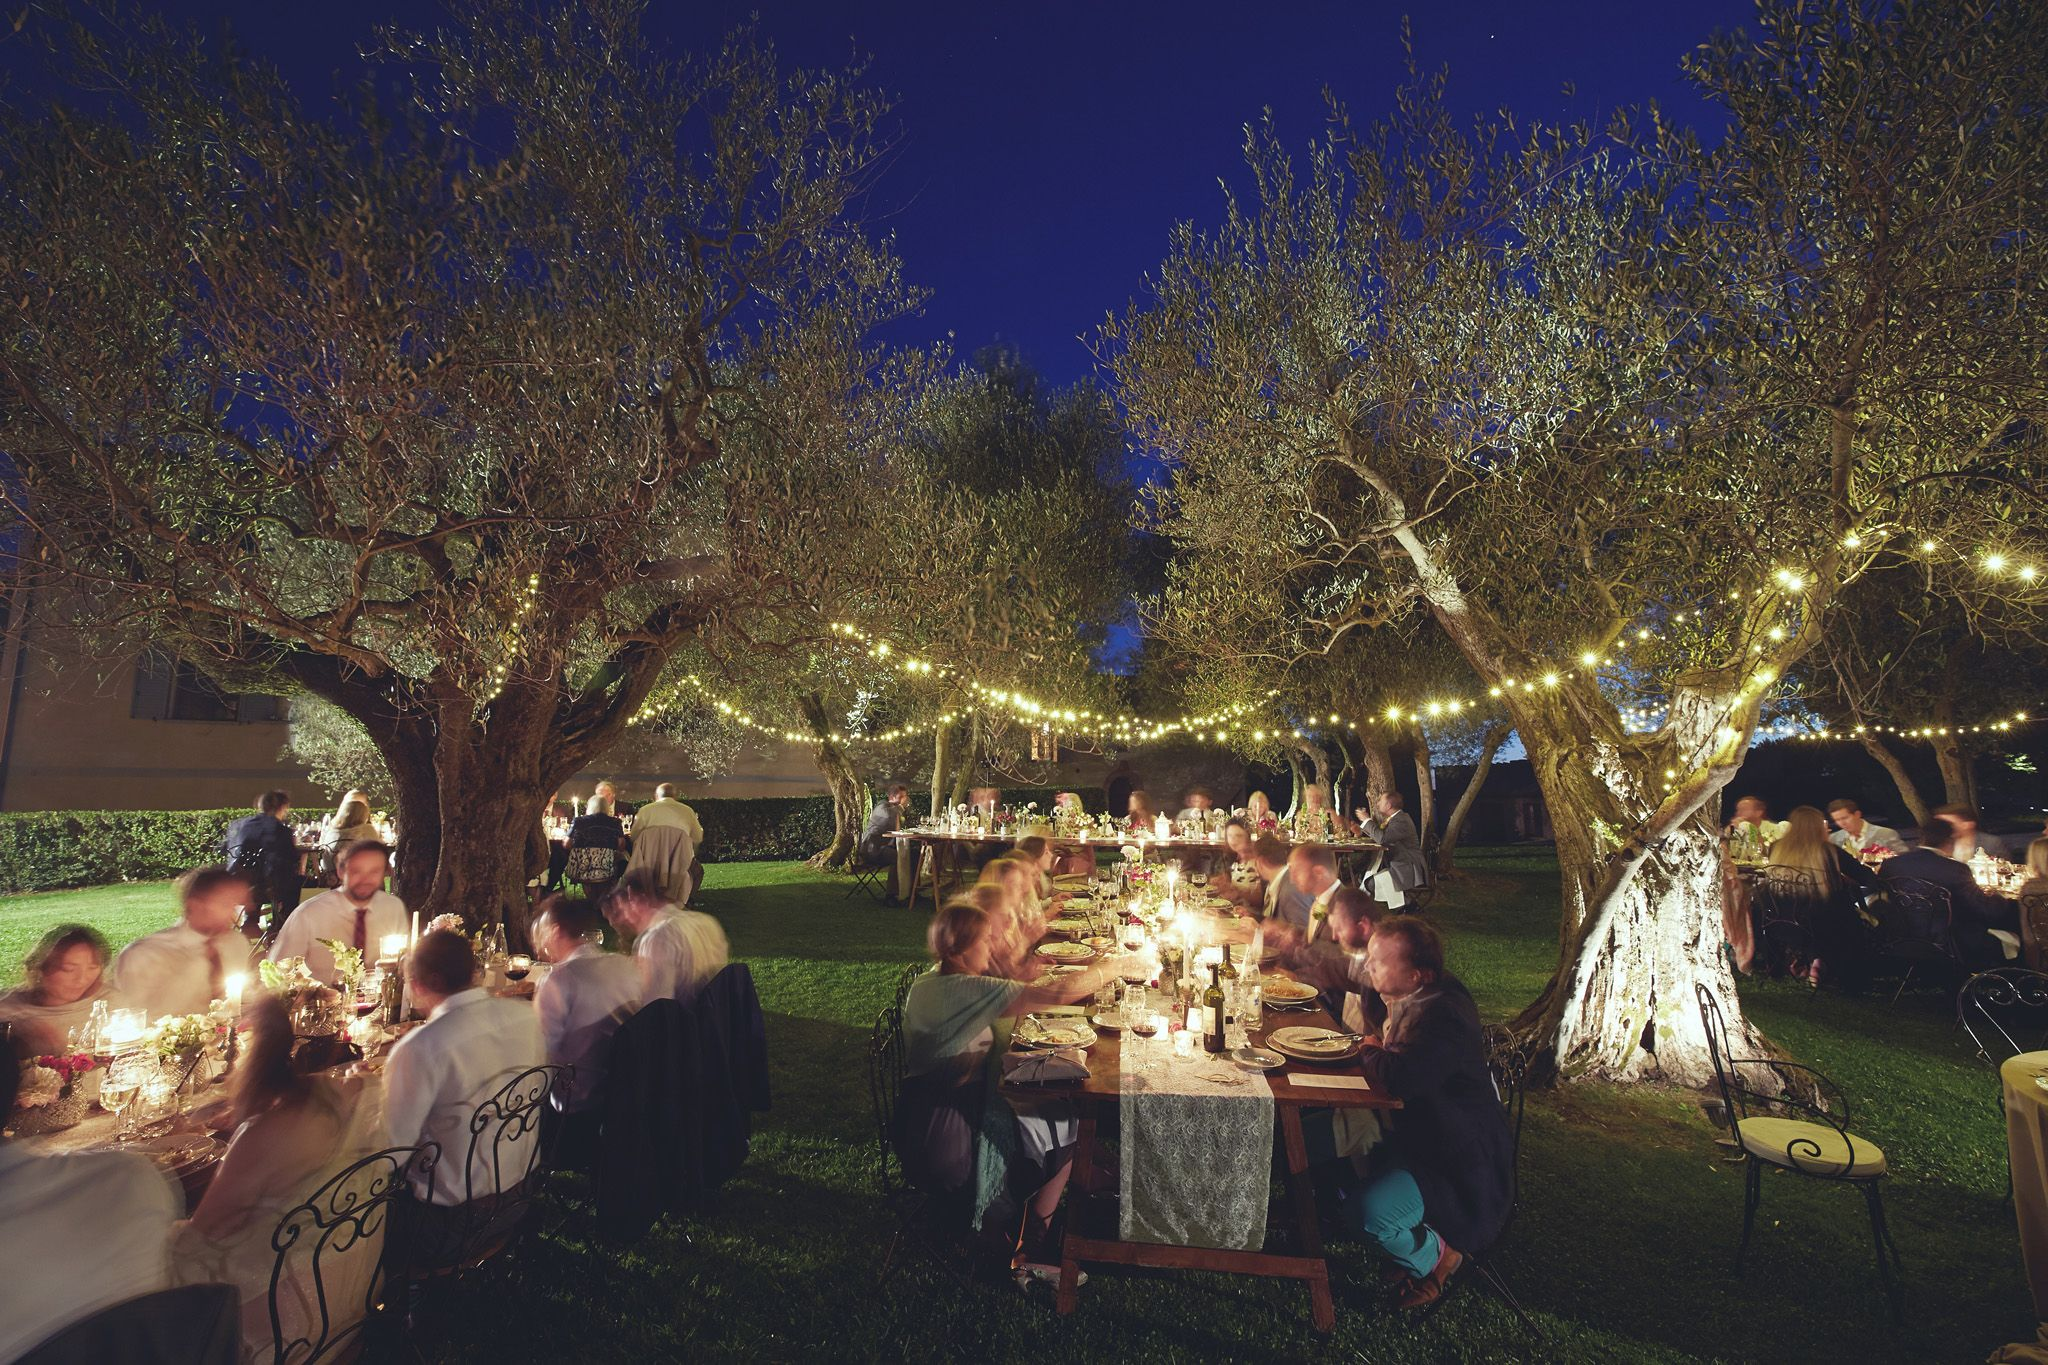 Wedding illumination wedding in tuscany outdoor elegance wedding illumination should not be forgotten candles lanterns fairy lights uplight spots create a special atmosphere in any kind of space aloadofball Gallery